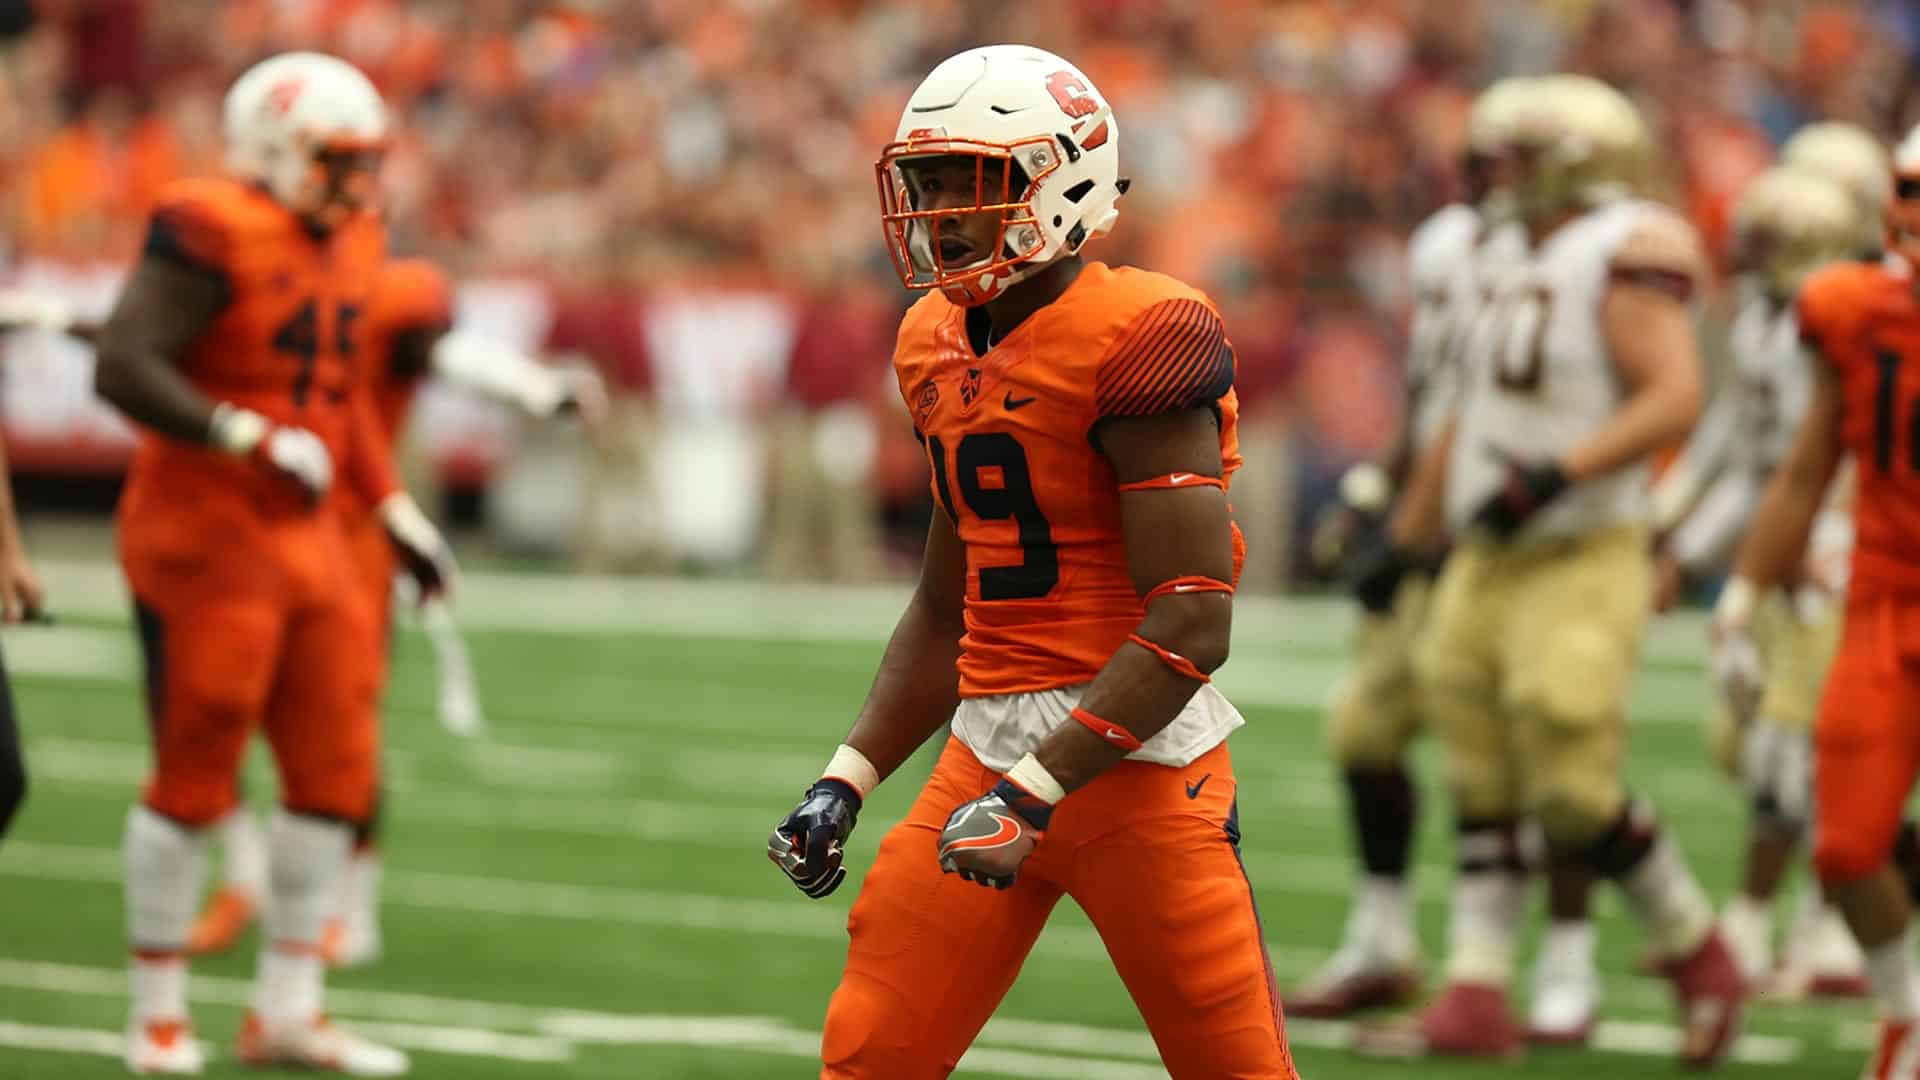 Syracuse safety Andre Cisco poised for college football stardom